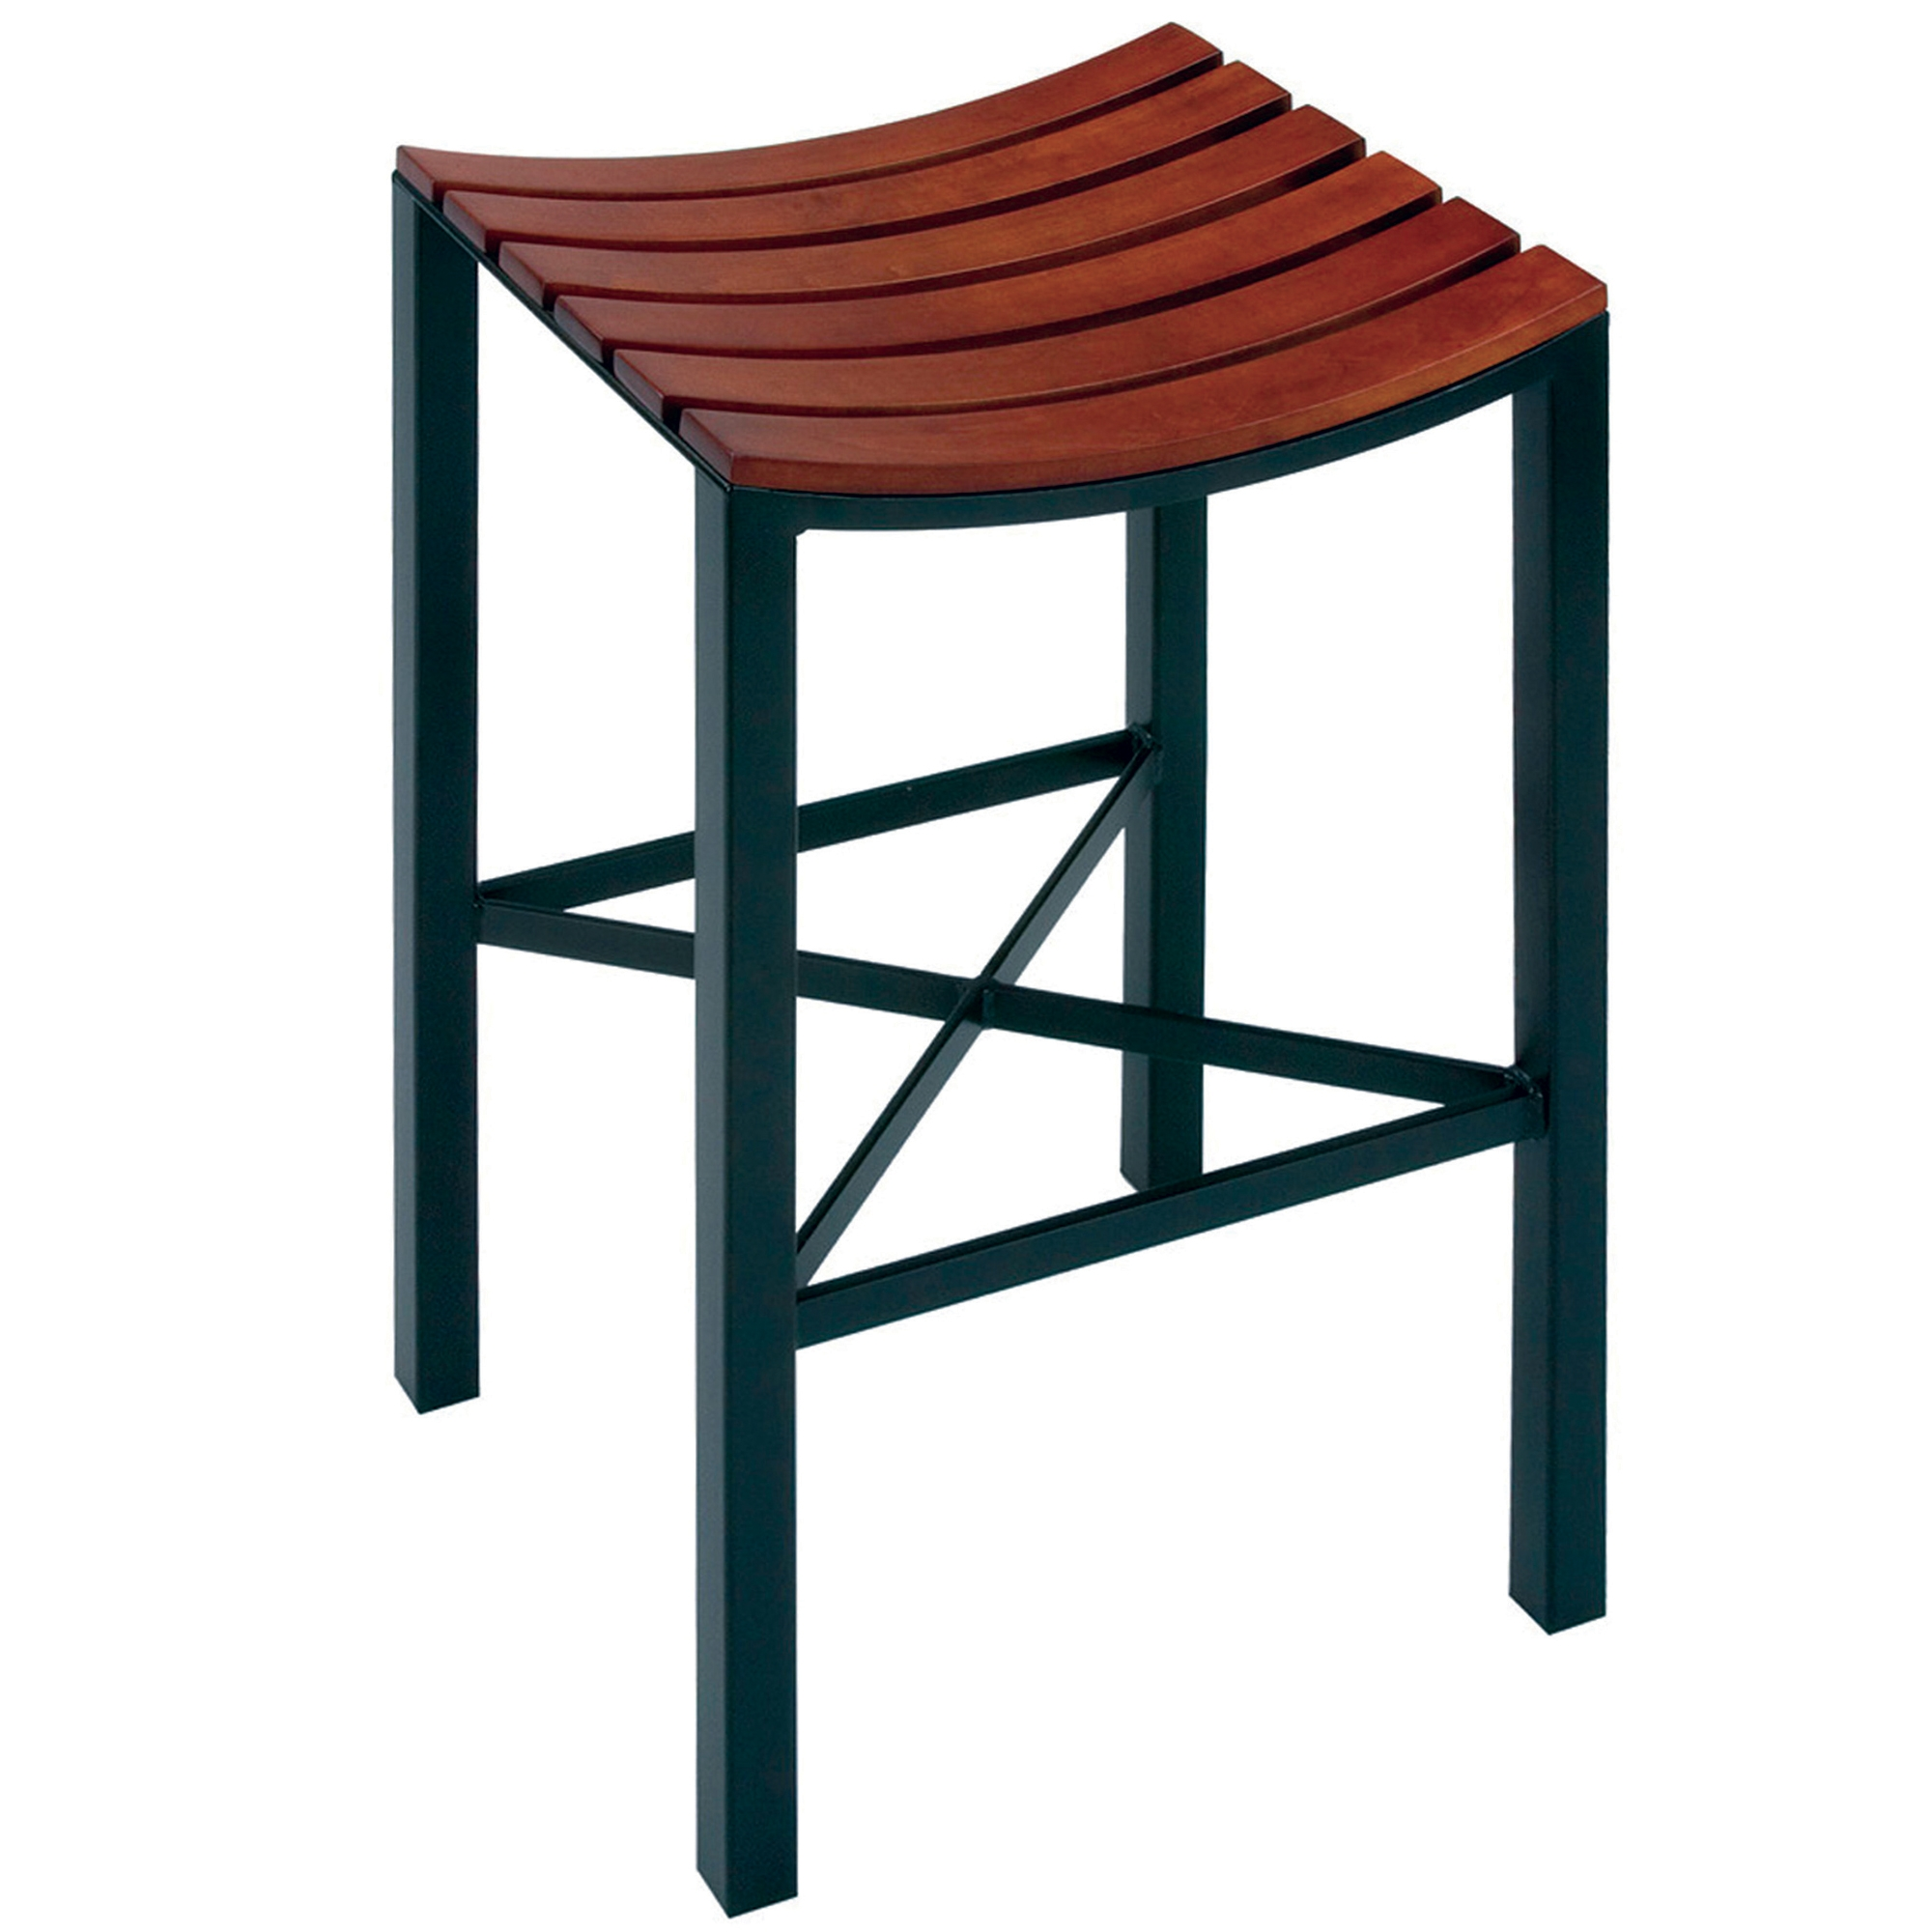 Pictured here is the Parsons Backless Counter Stool | Wood Seat with hand forged quality craftsmanship  sc 1 st  Timeless Wrought Iron & Parsons Backless Counter Stool | Wood Seat | 26-in Seat Height islam-shia.org